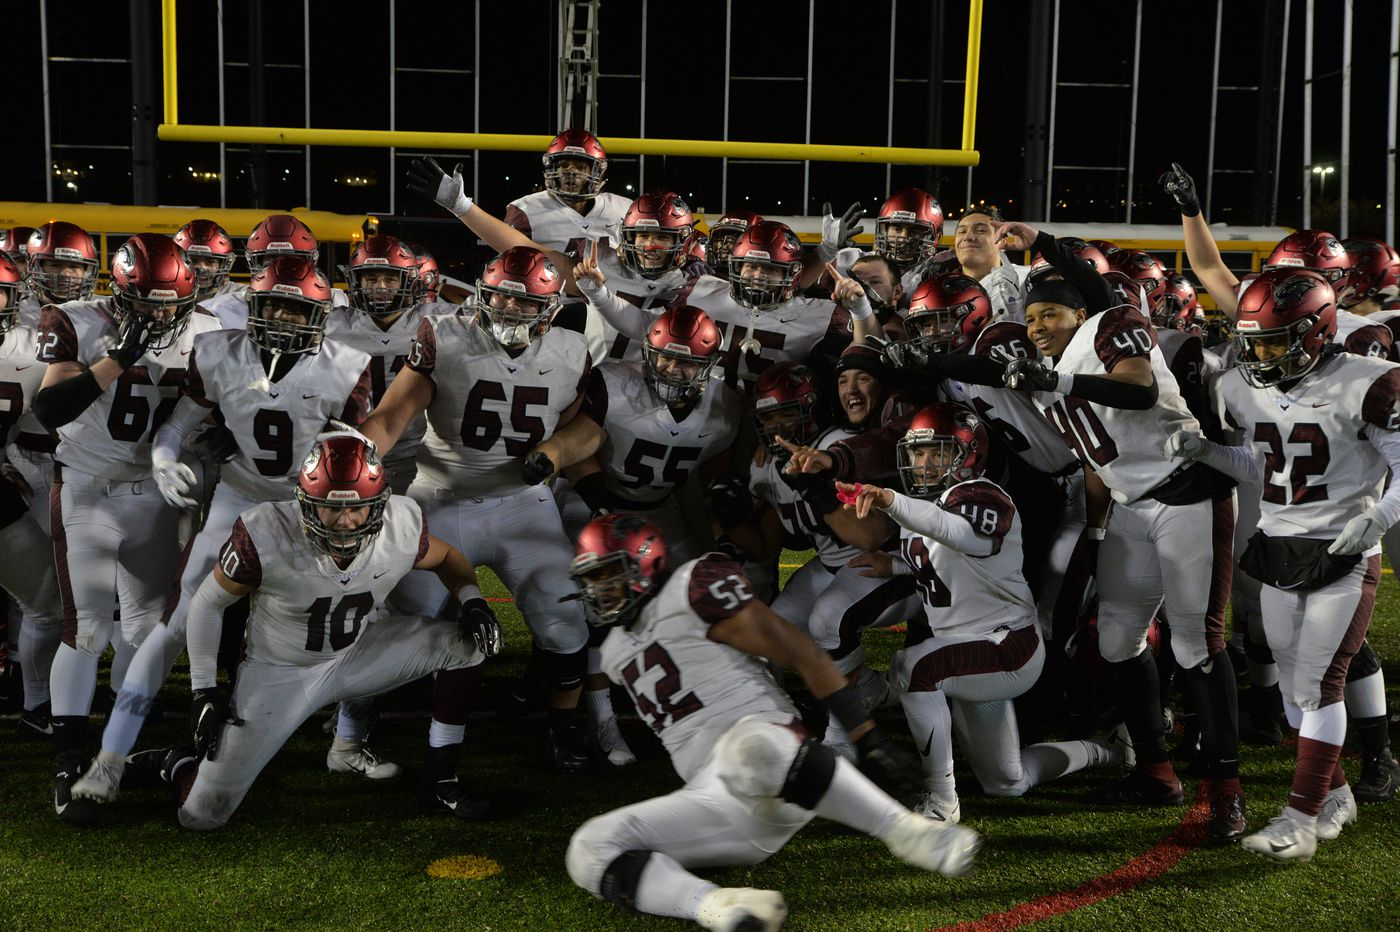 PIAA wants high school sports, but it's not up to them | Morning Newsletter